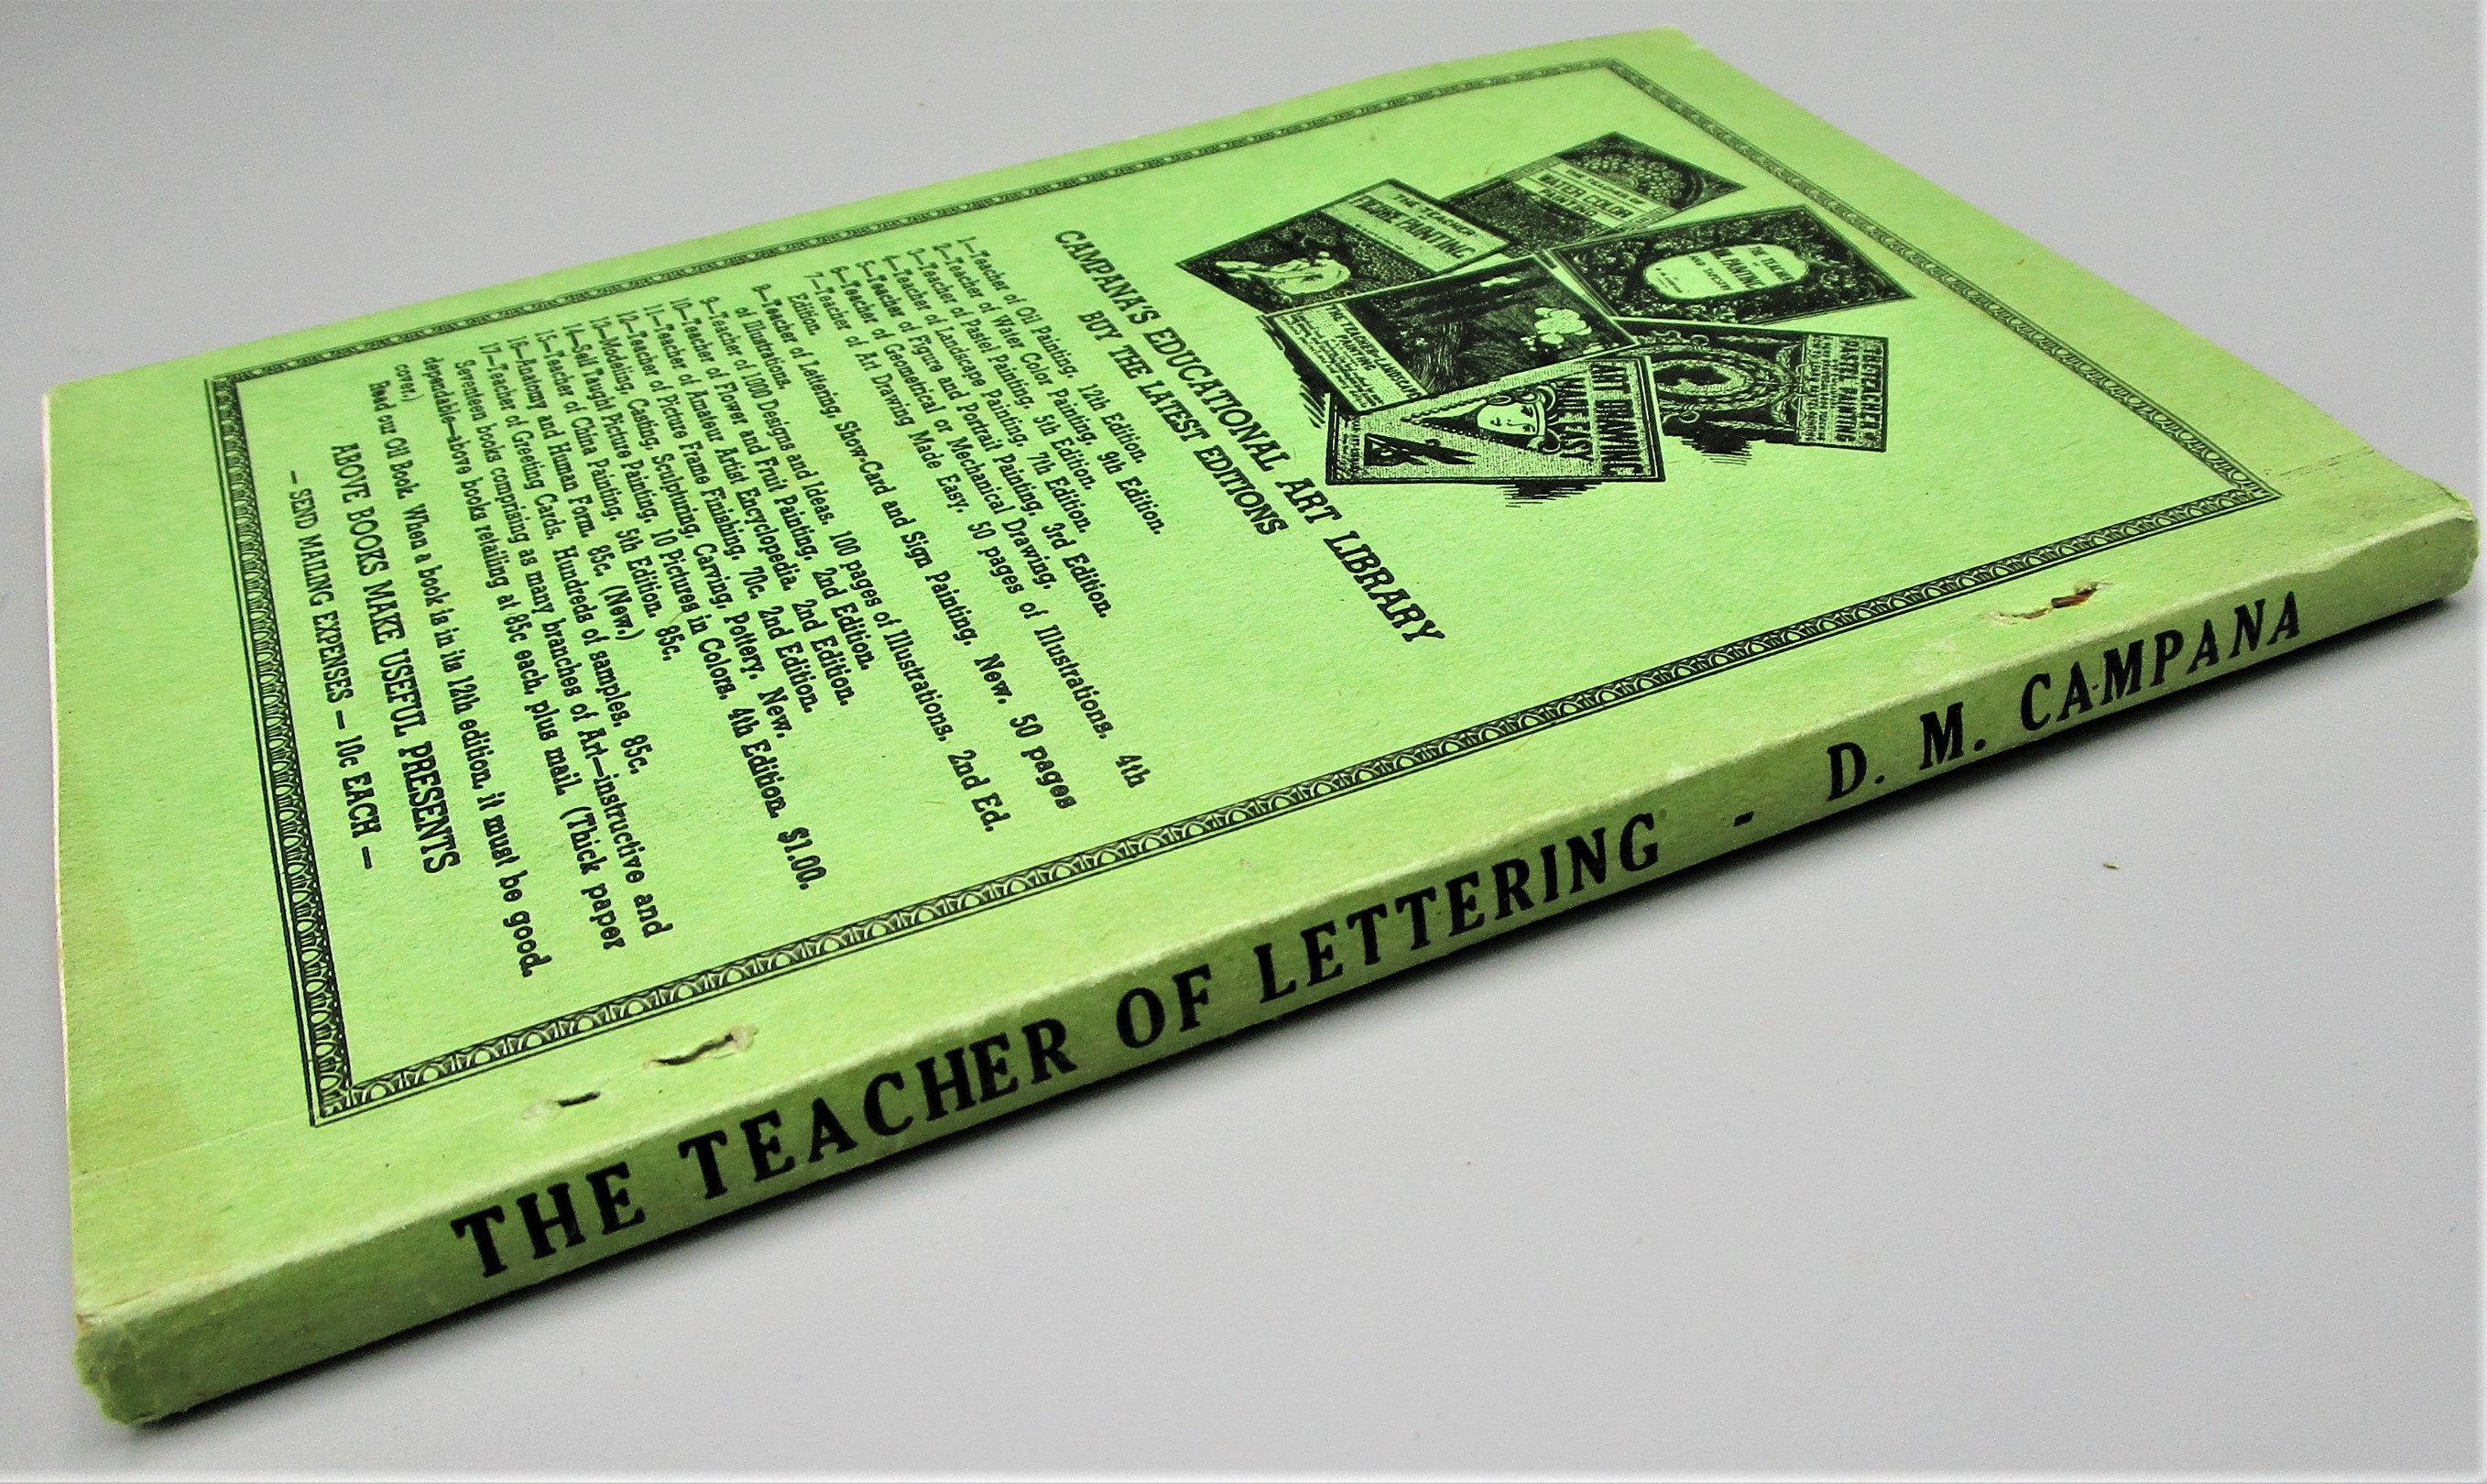 THE TEACHER OF LETTERING SHOW-CARD SIGN PAINTING, by D.M Campana - 1945